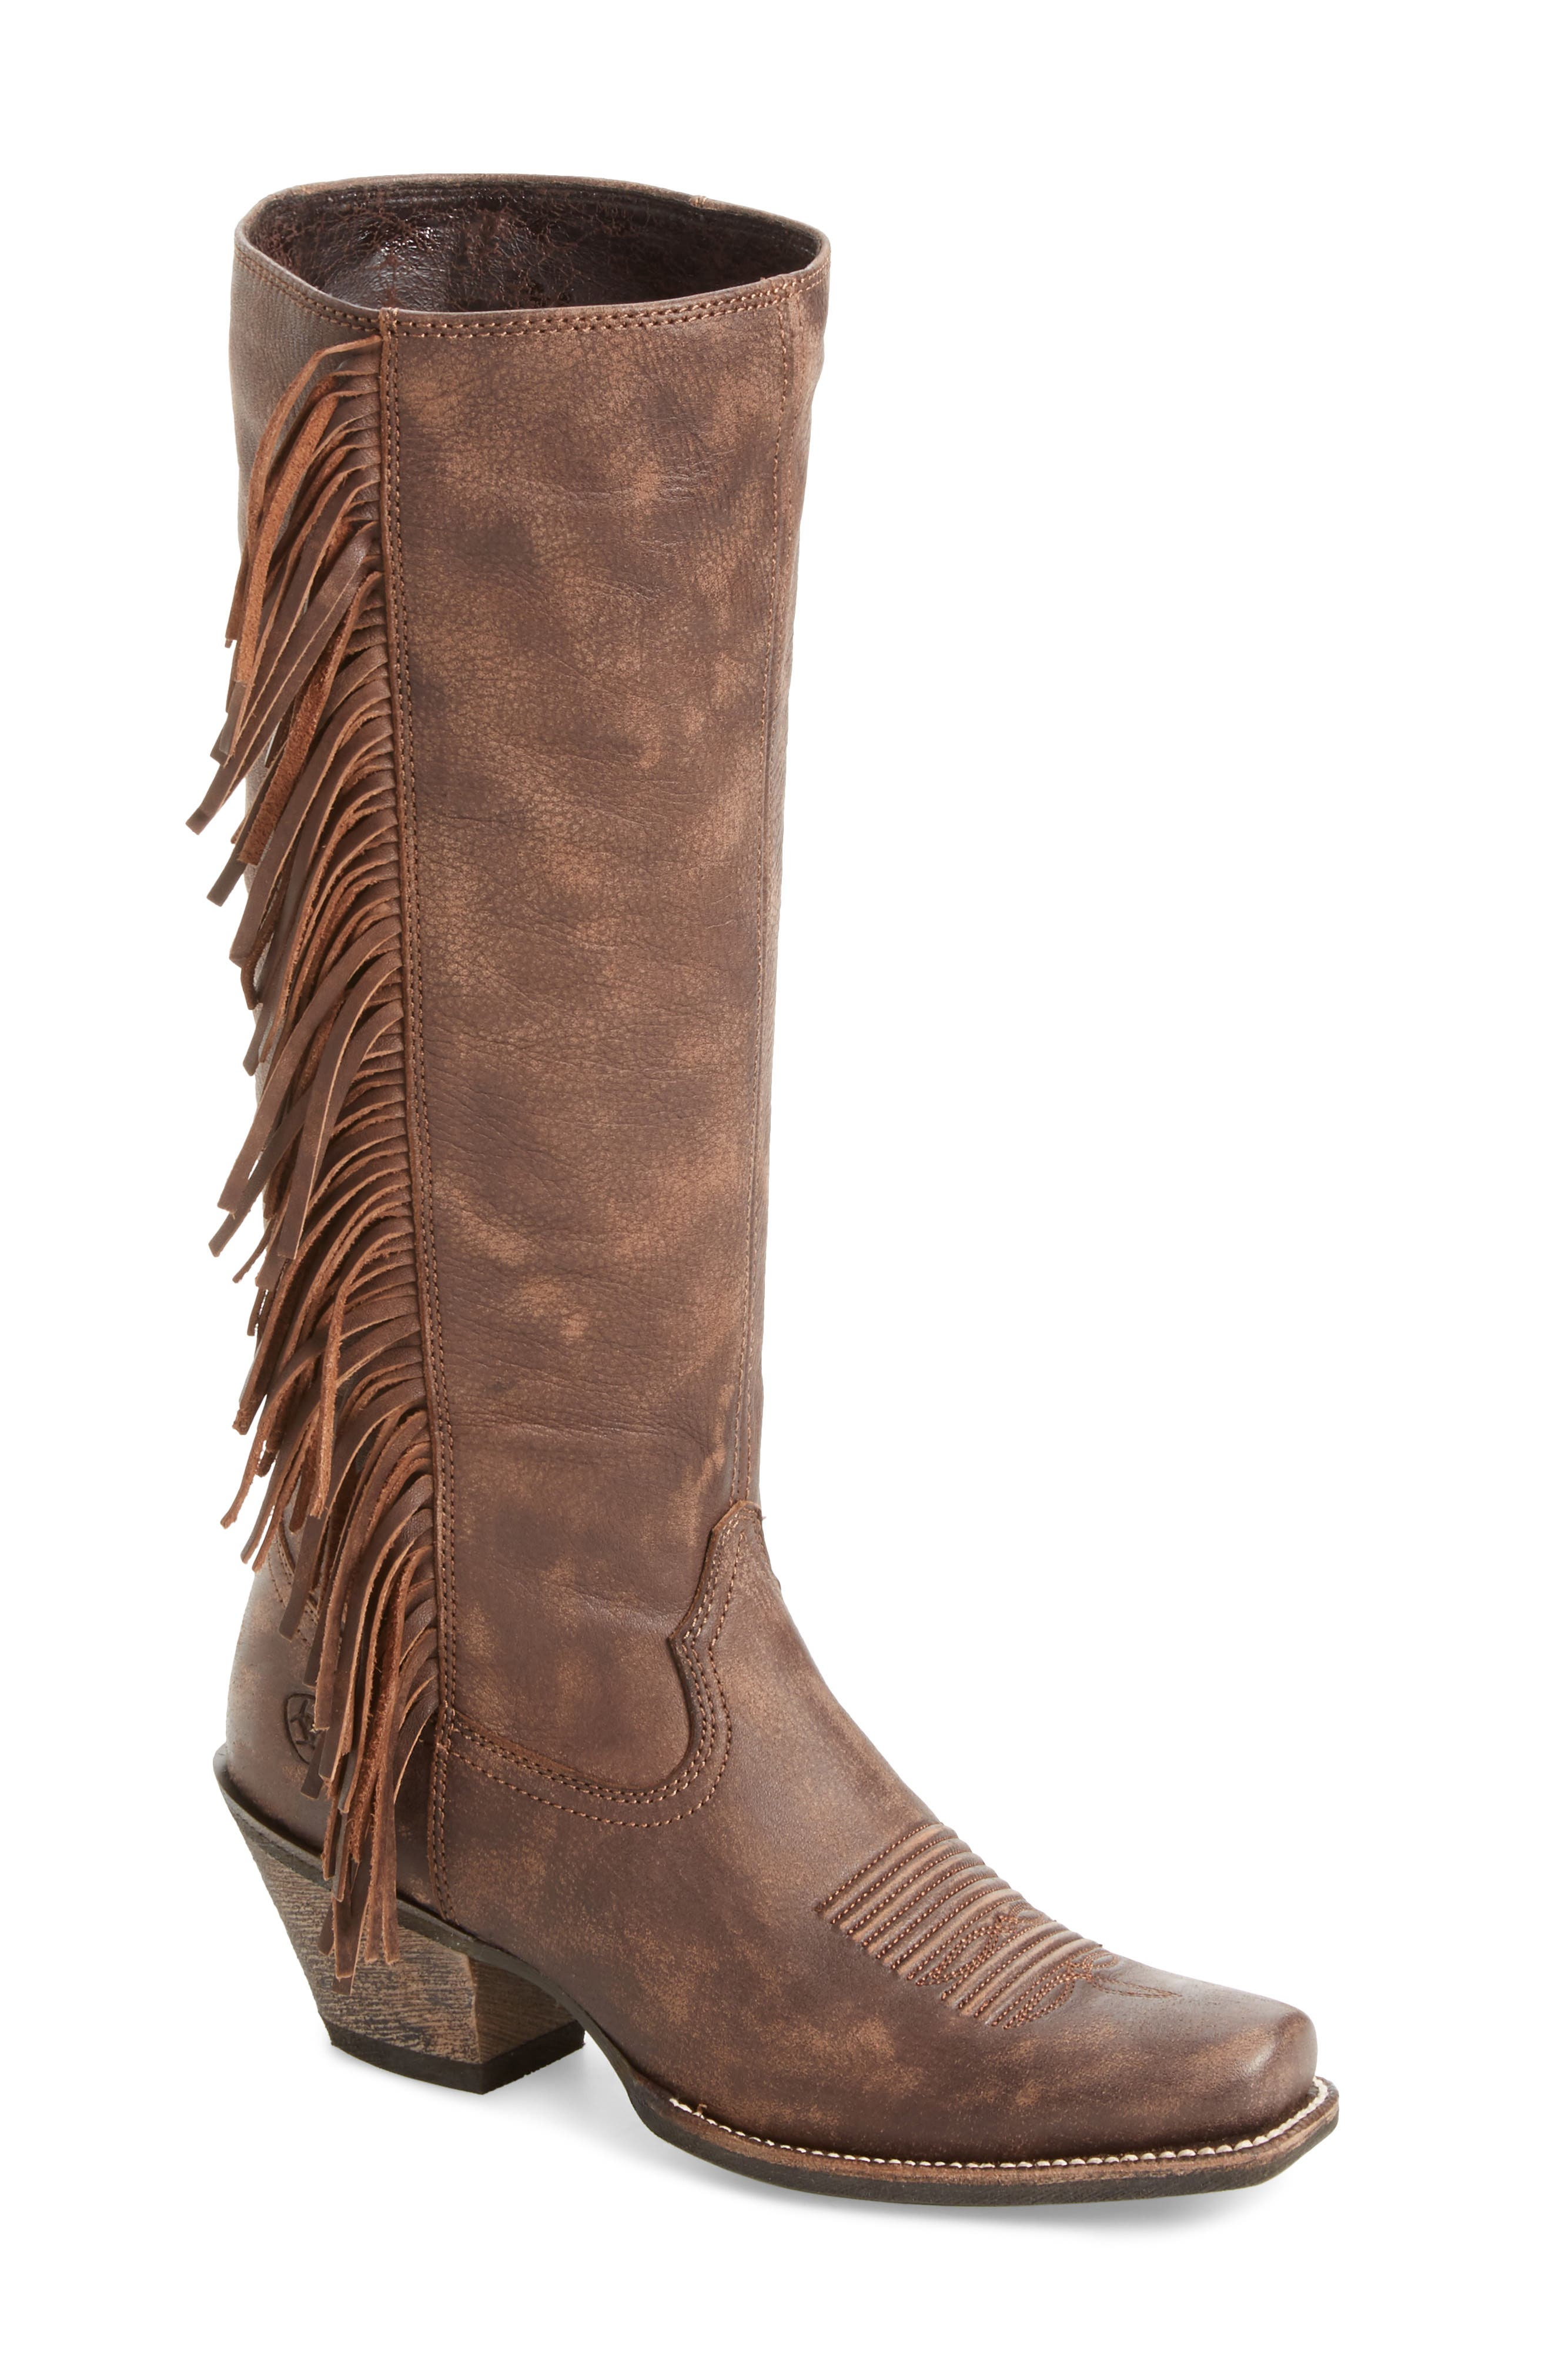 Leyton Fringe Western Boot,                             Main thumbnail 1, color,                             TACK ROOM CHOCOLATE LEATHER